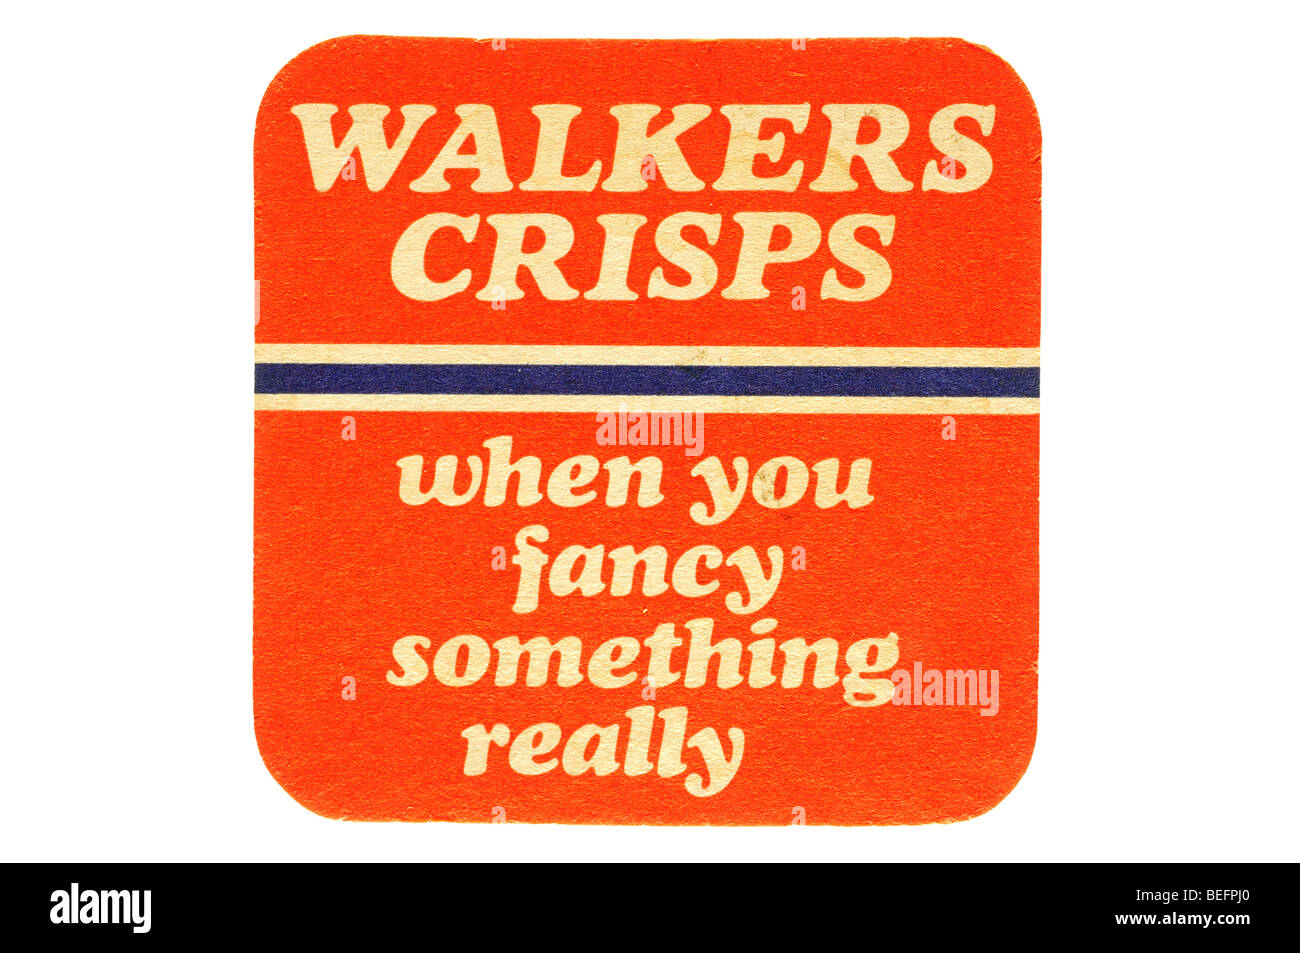 walkers crisps when you fancy something really - Stock Image